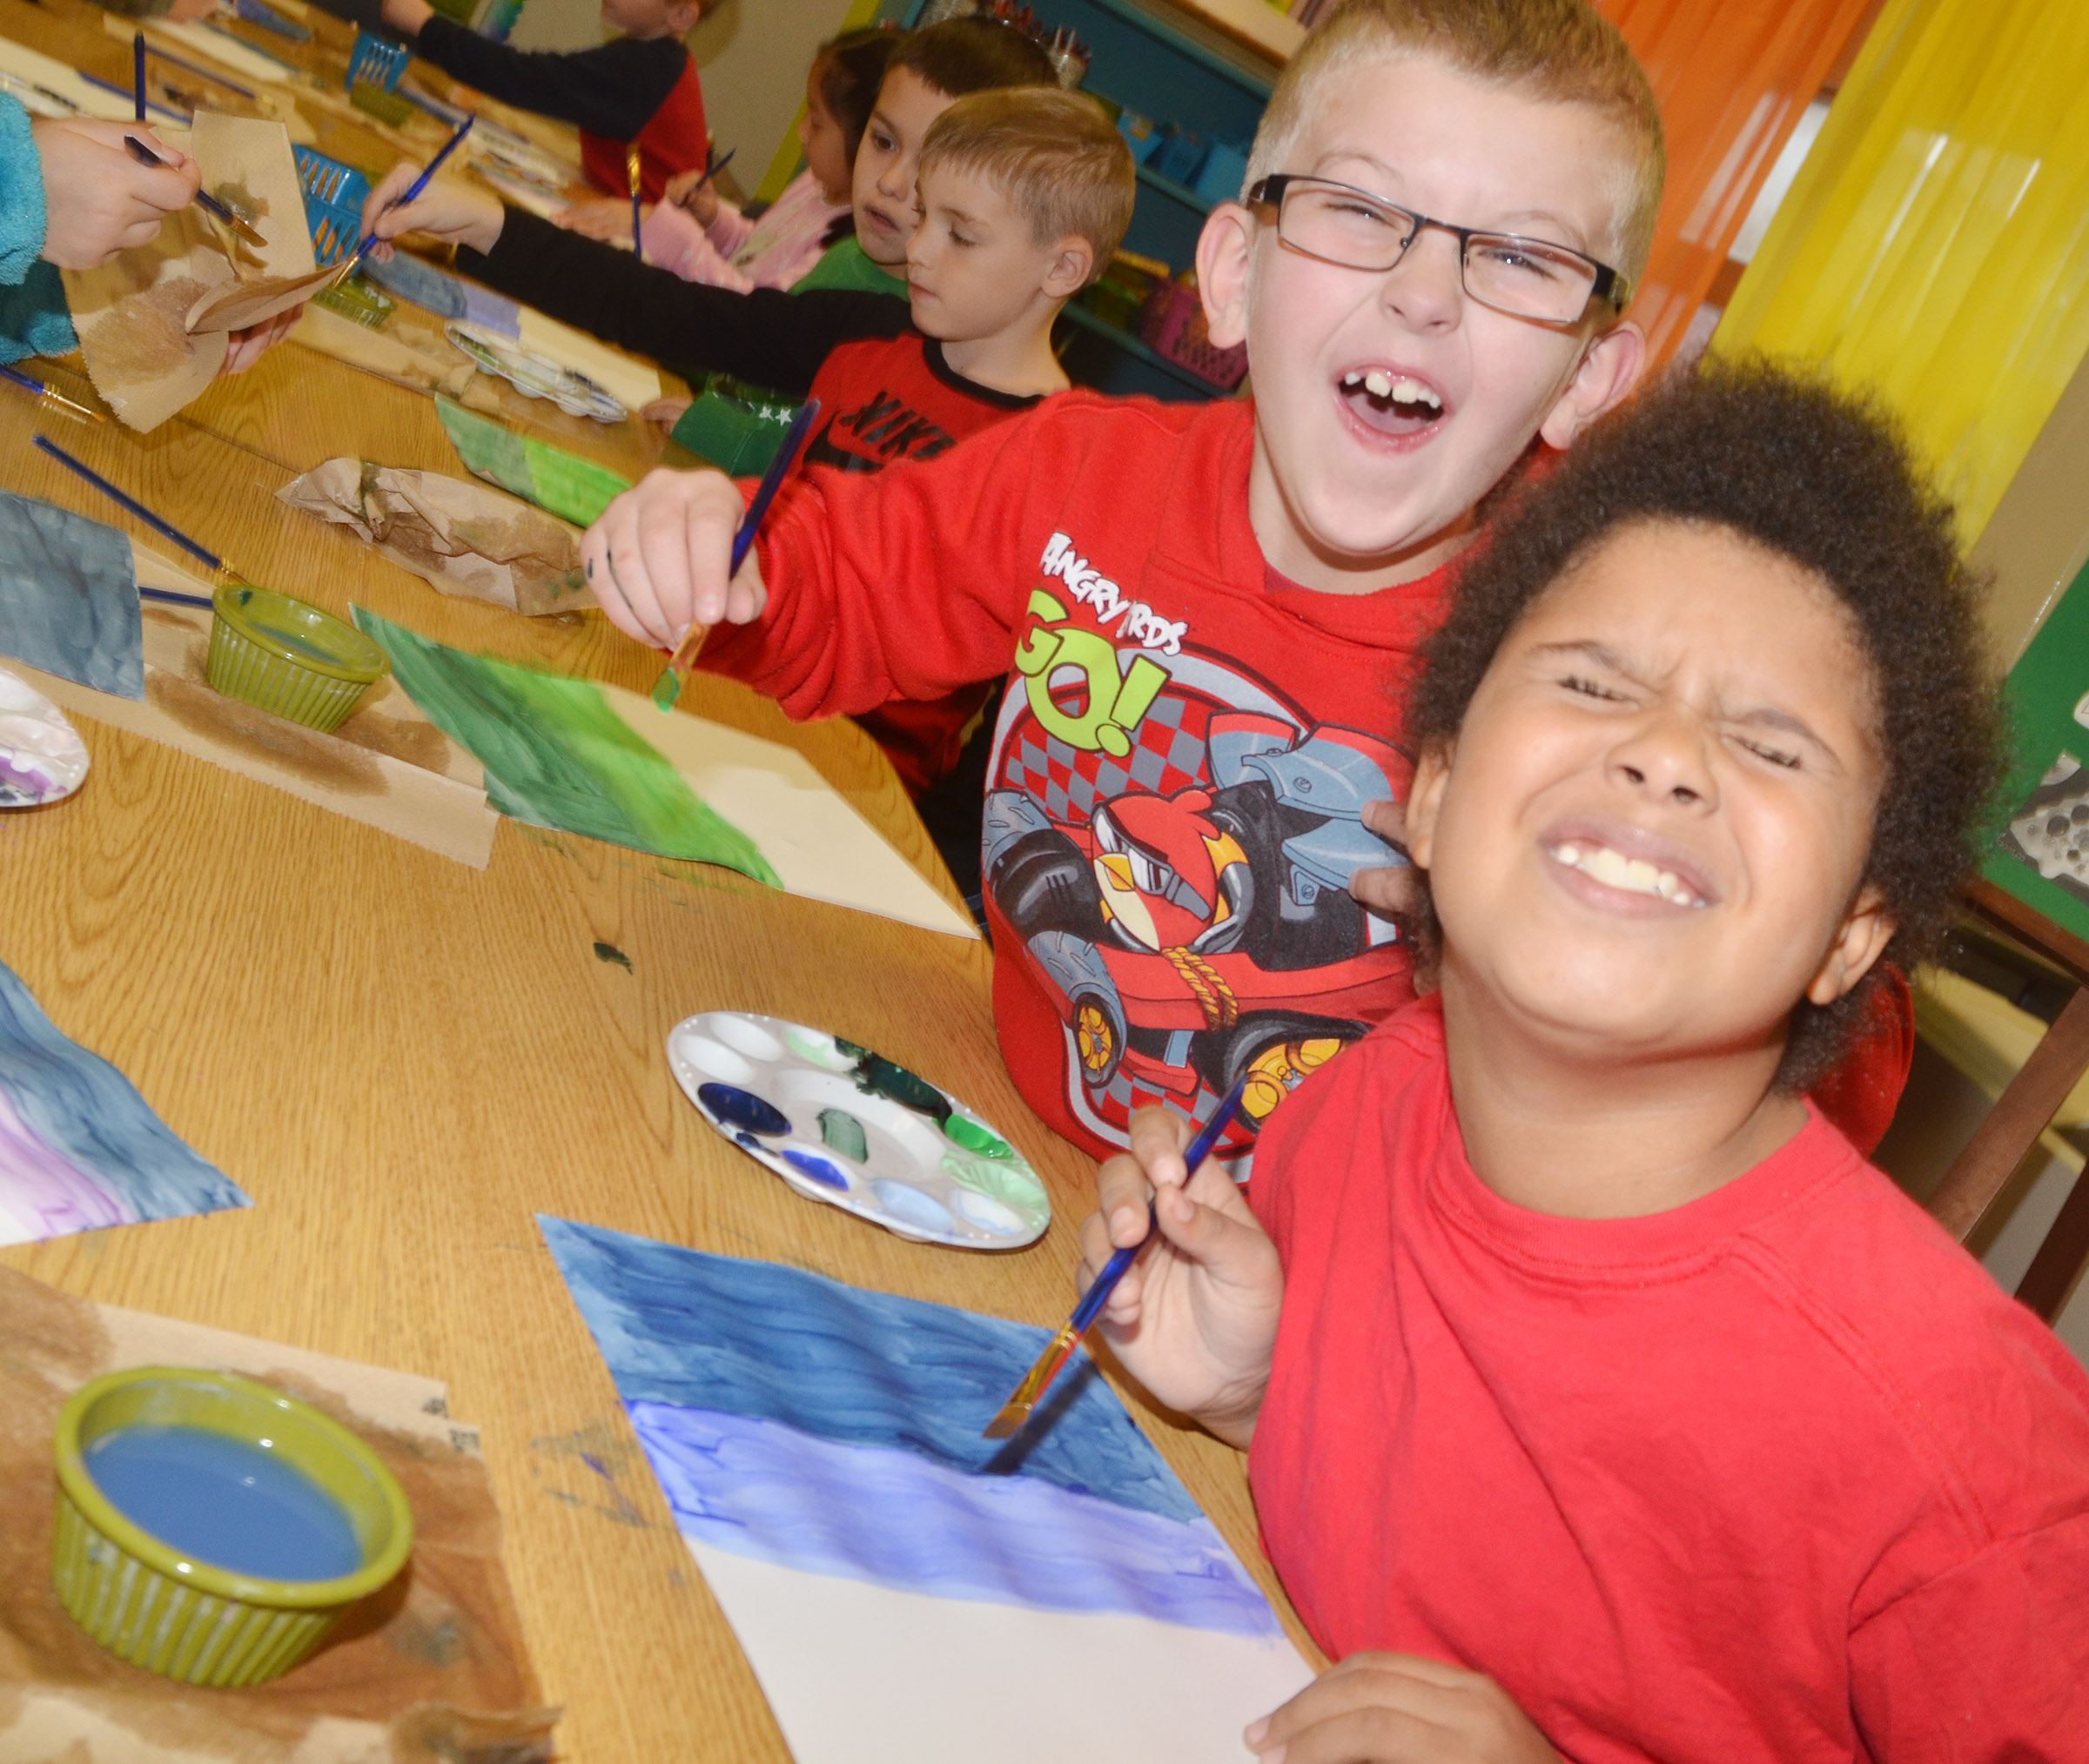 CES second-graders Ethan Bailey, at left, and Navon Copeland have fun as they paint.